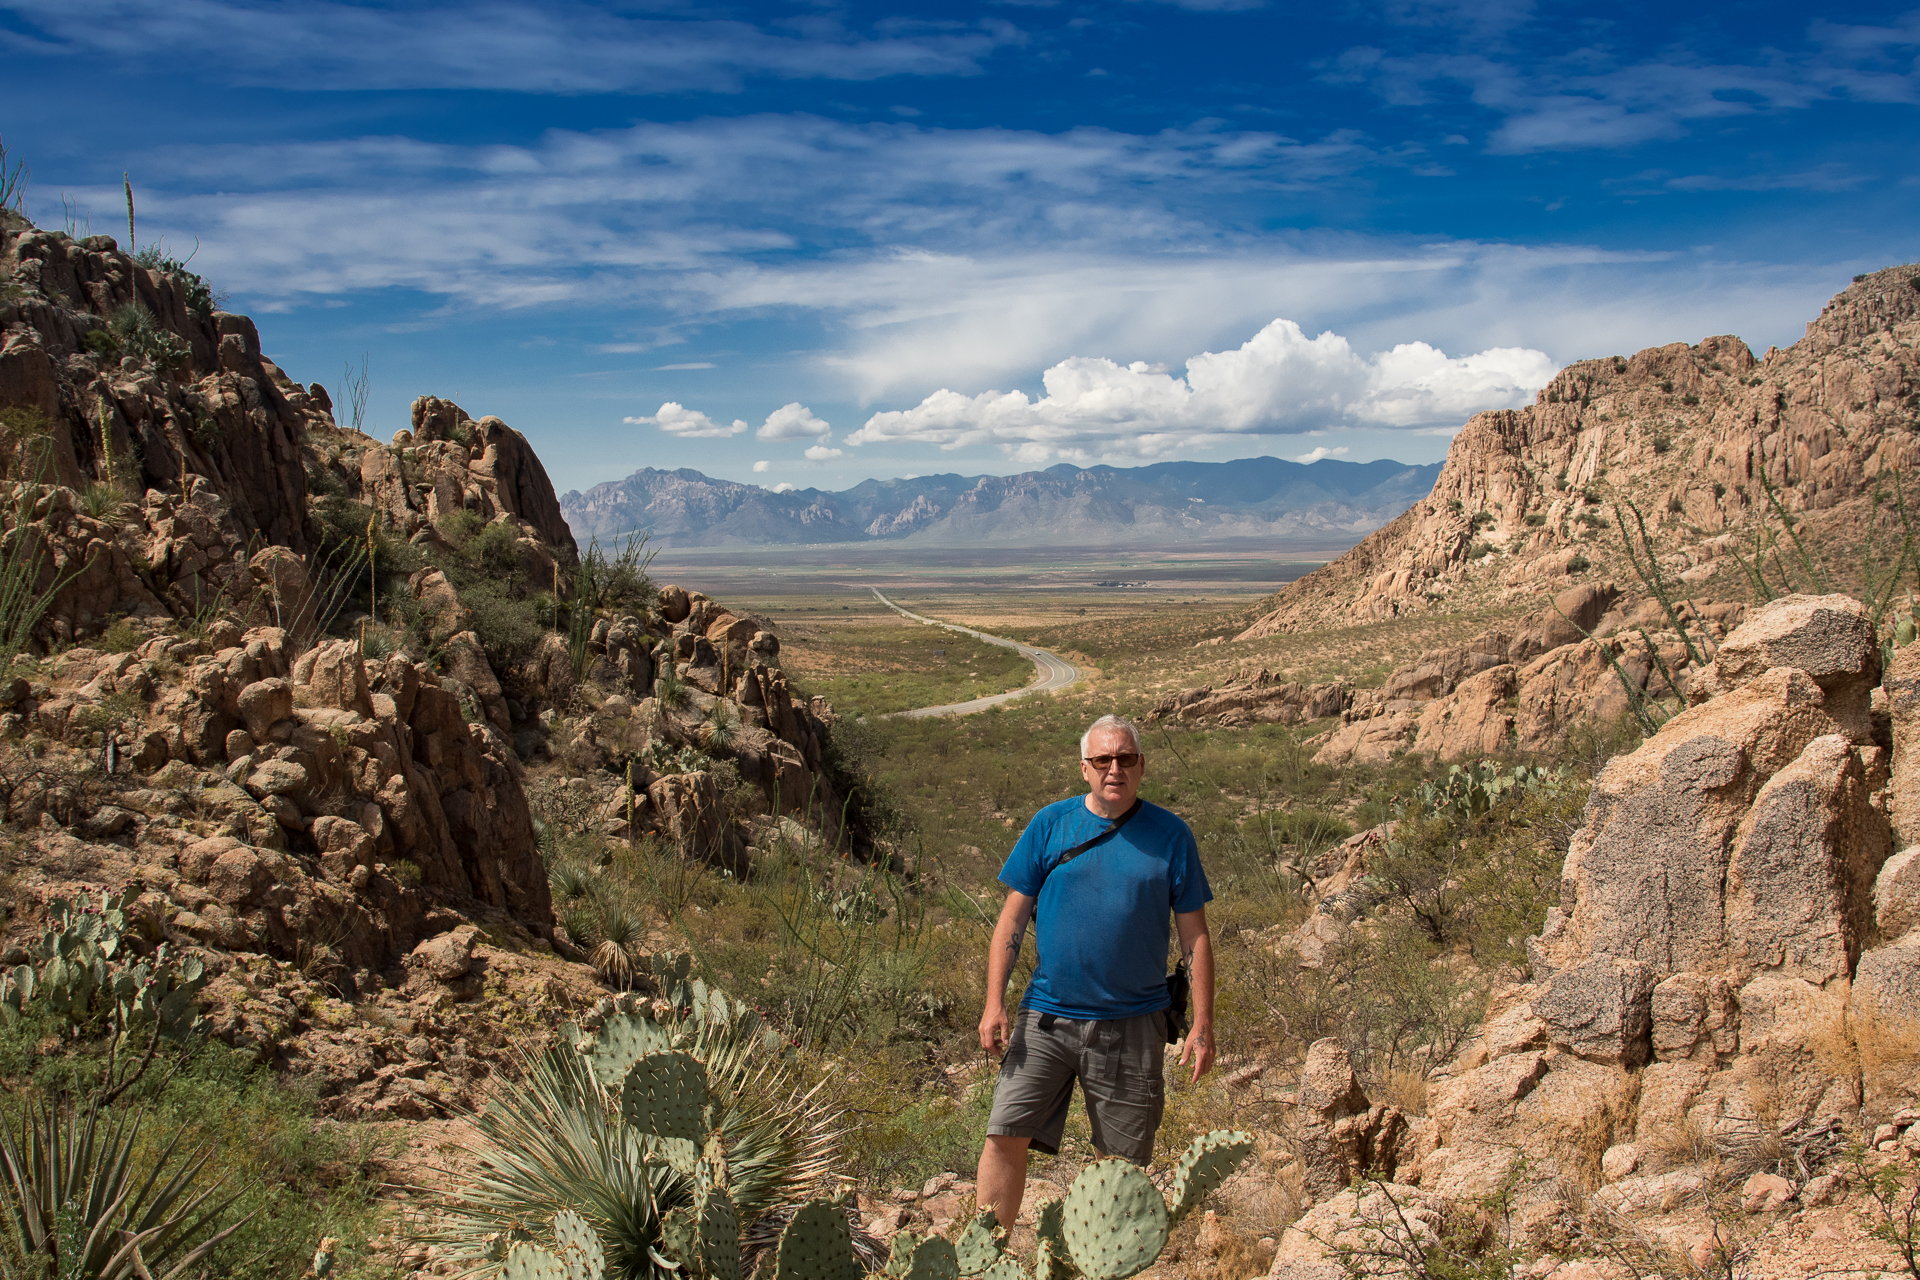 Mark at Granite Gap, Peloncillo Mountains, with Highway 80 heading south and the Chiricahua Mountains in the background.